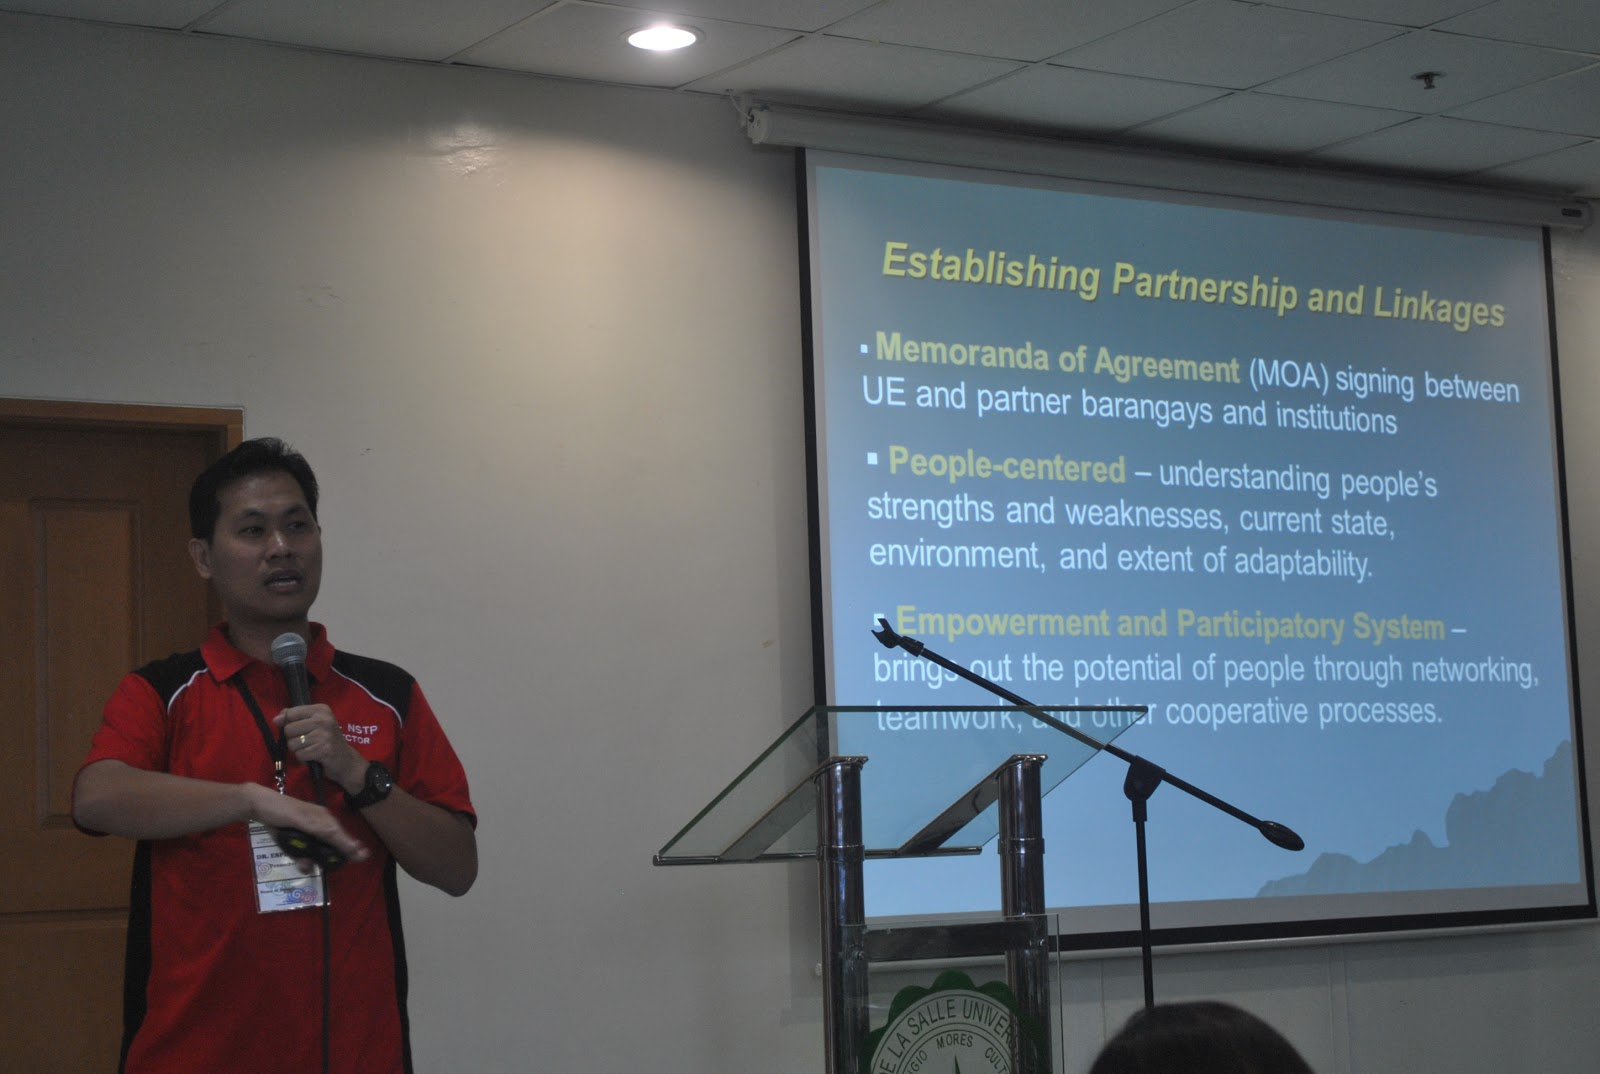 nstp experience What have you learned from the drrm seminarxworkshopxtrainingxpracticals(meaning of concepts: disaster, hazards, disaster risk reduction formula, capacities, vulnerabilities, philippine disaster situation facts, risk reduction, participatory management of disasters or bibingka approach, disaster resilience,bamboo as a symbol of disaster.